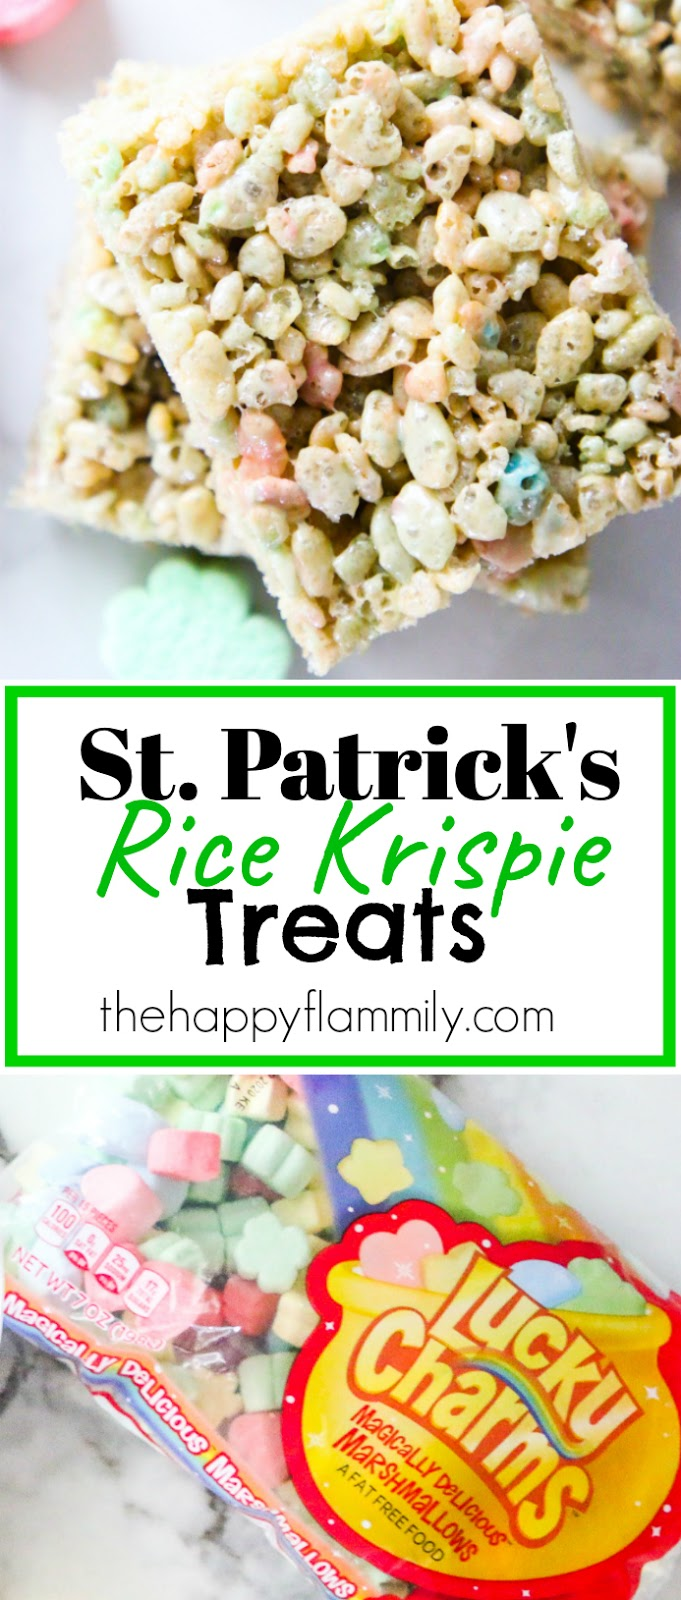 How to make green Rice Krispie treats. Green Rice Krispie treats for St Patricks day. St Patricks day recipes. St Patricks treat ideas. St Patricks party ideas. St Patricks rice crisps with Lucky Charms marshmallows. Lucky charms marshmallow treat ideas. Easy st Patricks day recipes. Easy green recipe ideas. St Patricks day food ideas. #green #treats #kids #ricekrispies #ricecrispies #stpatricks #stpatricksday #marshmallows #rainbow #sweets